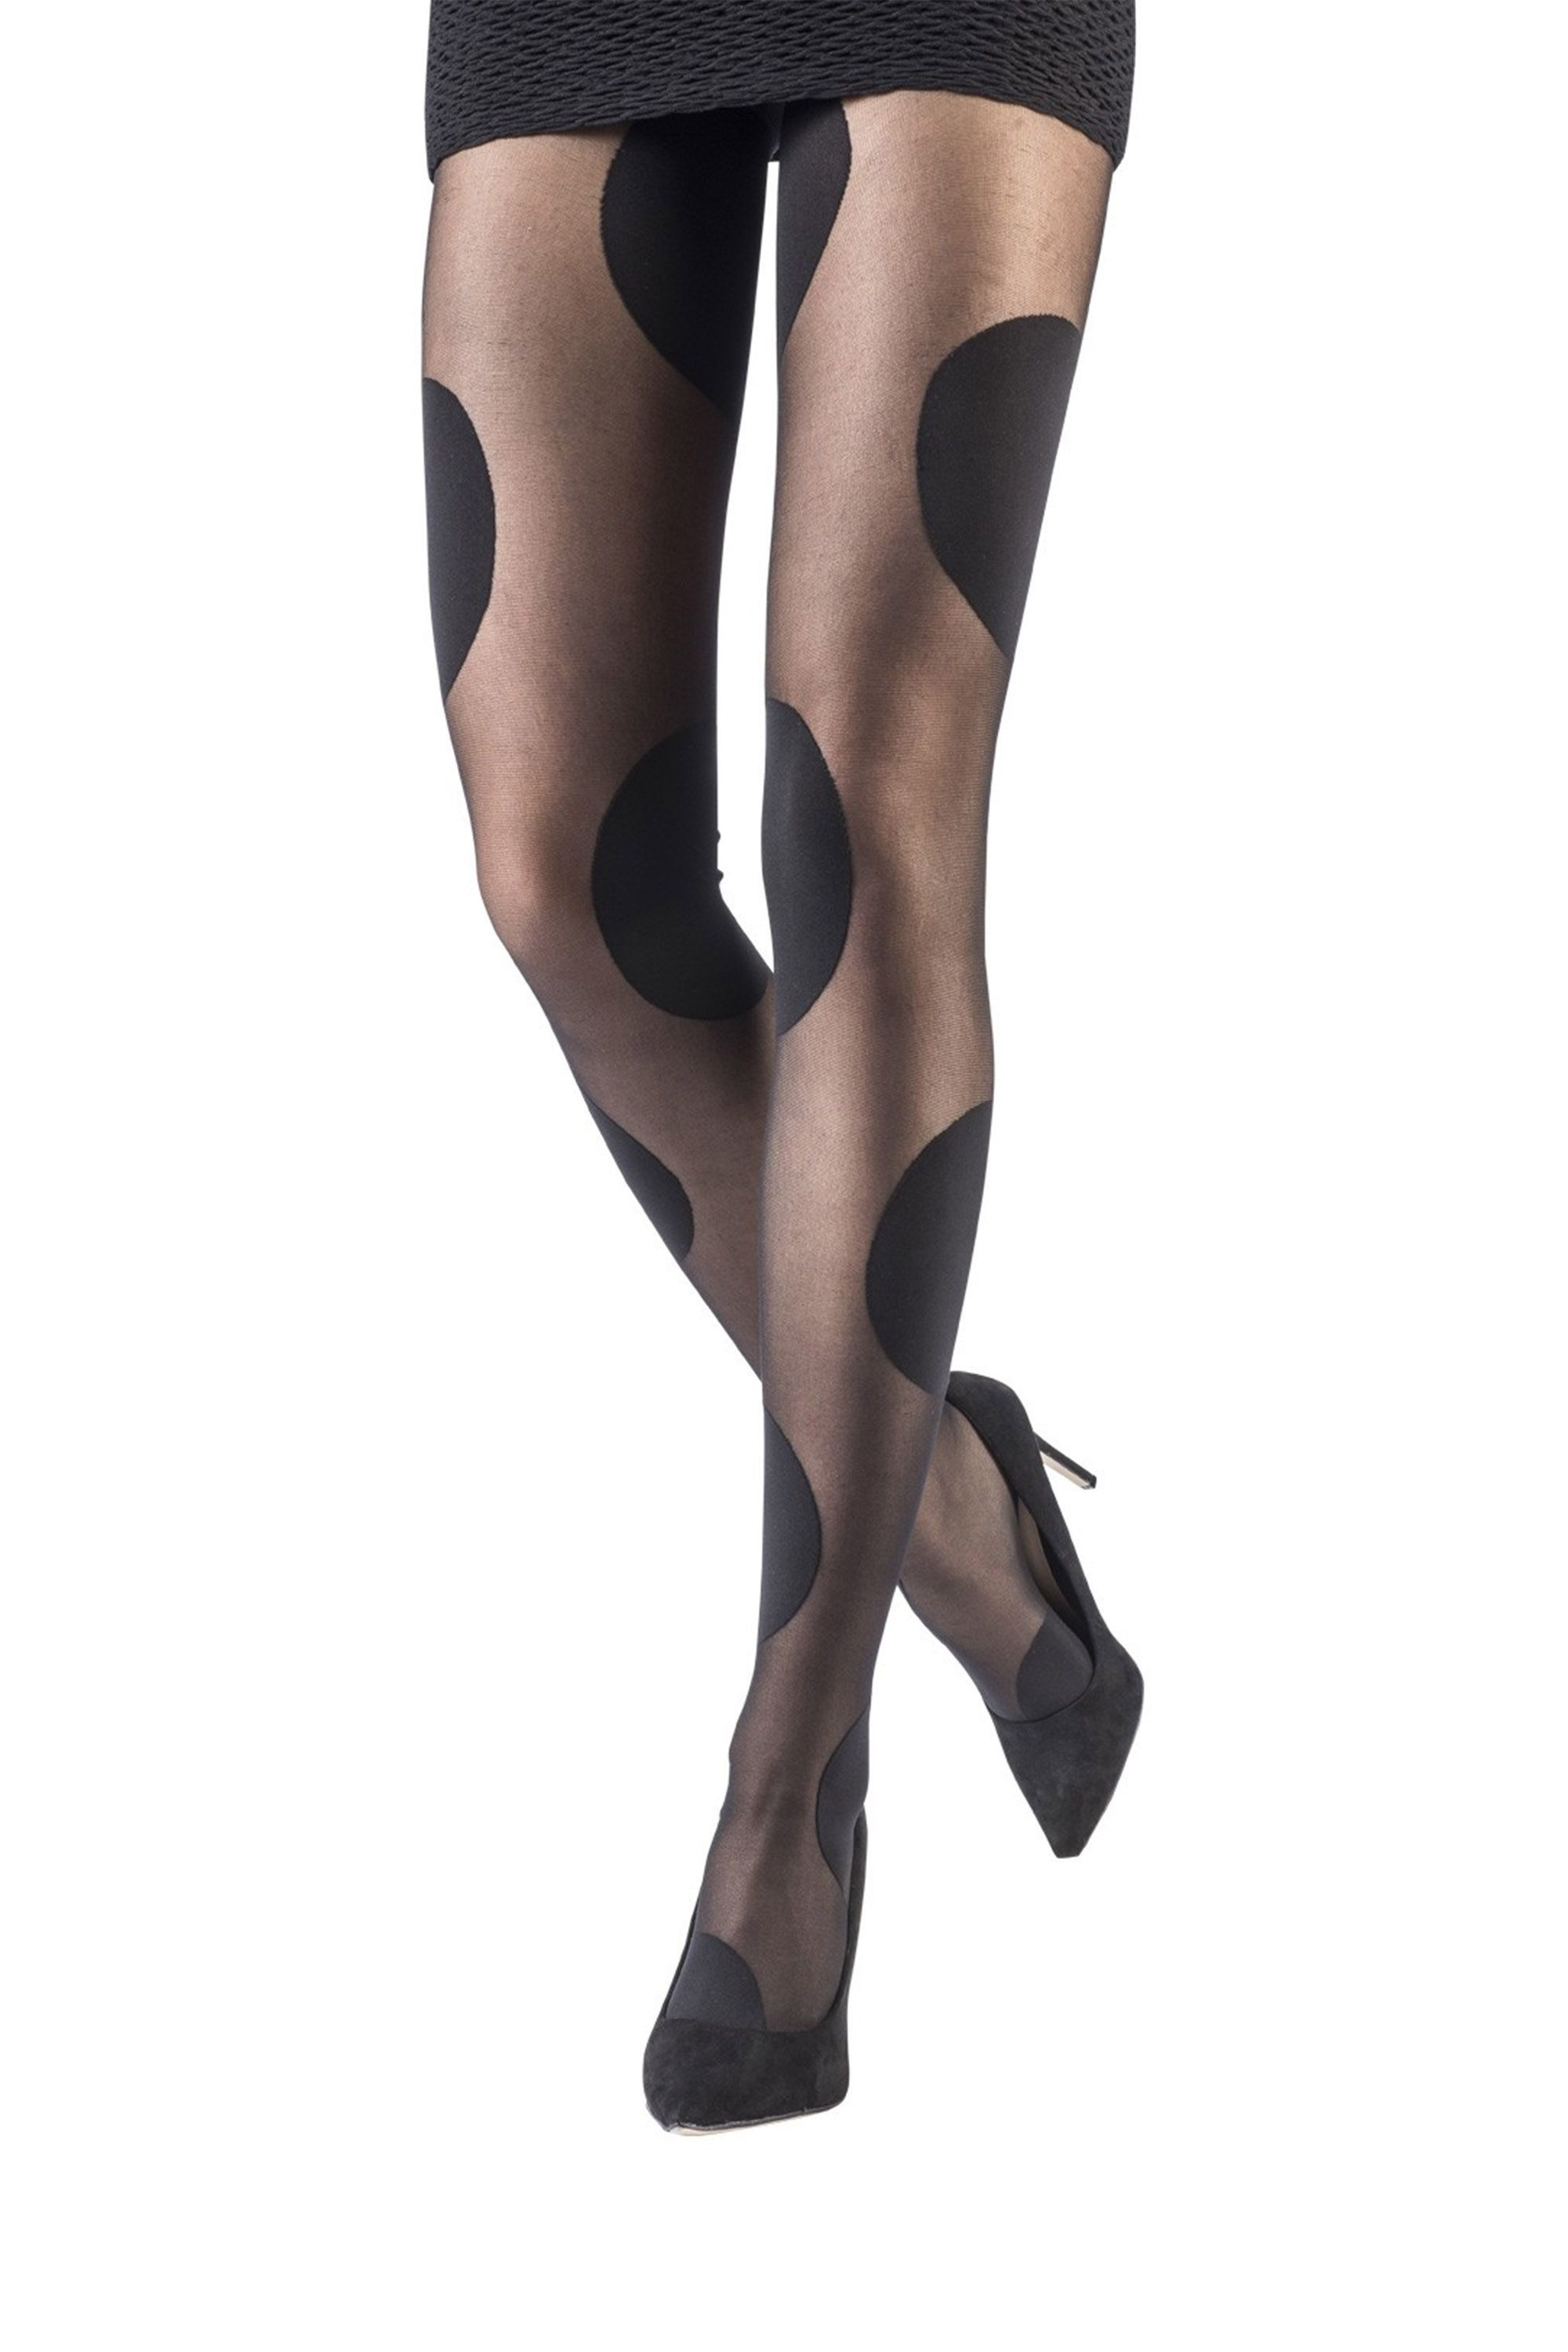 cb818c780 Best Black Tights for Winter and Cold Weather